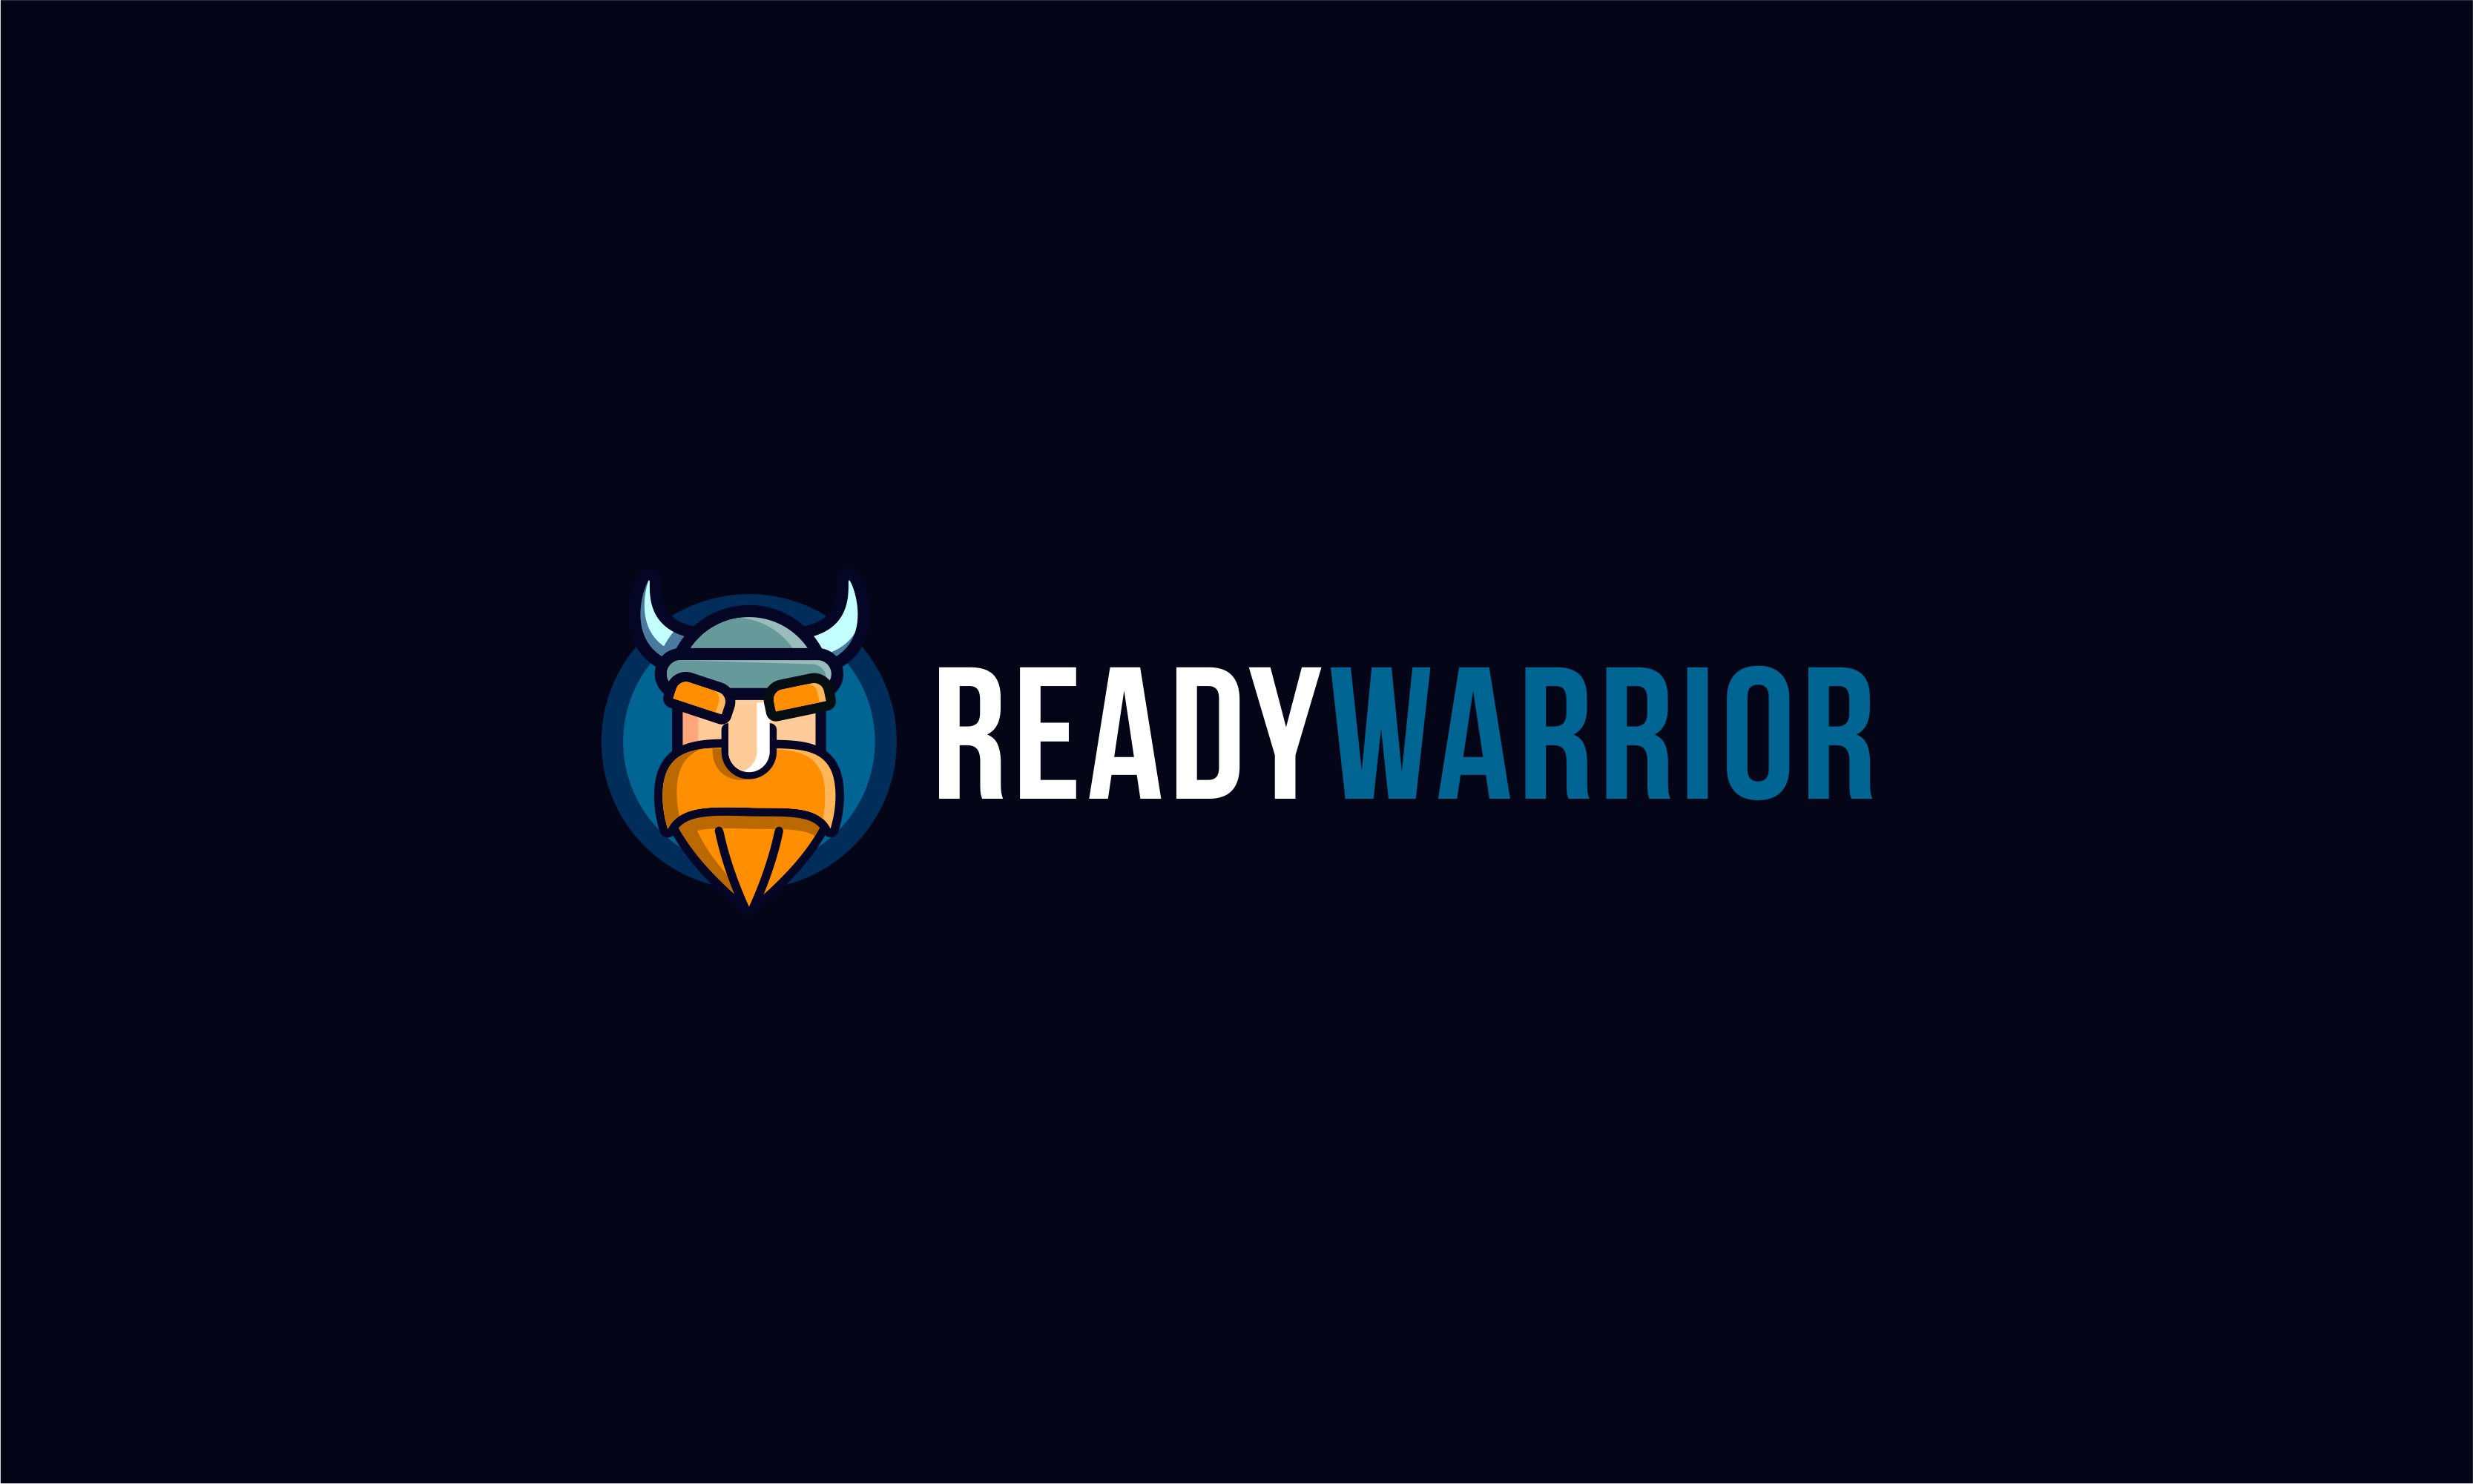 ReadyWarrior logo